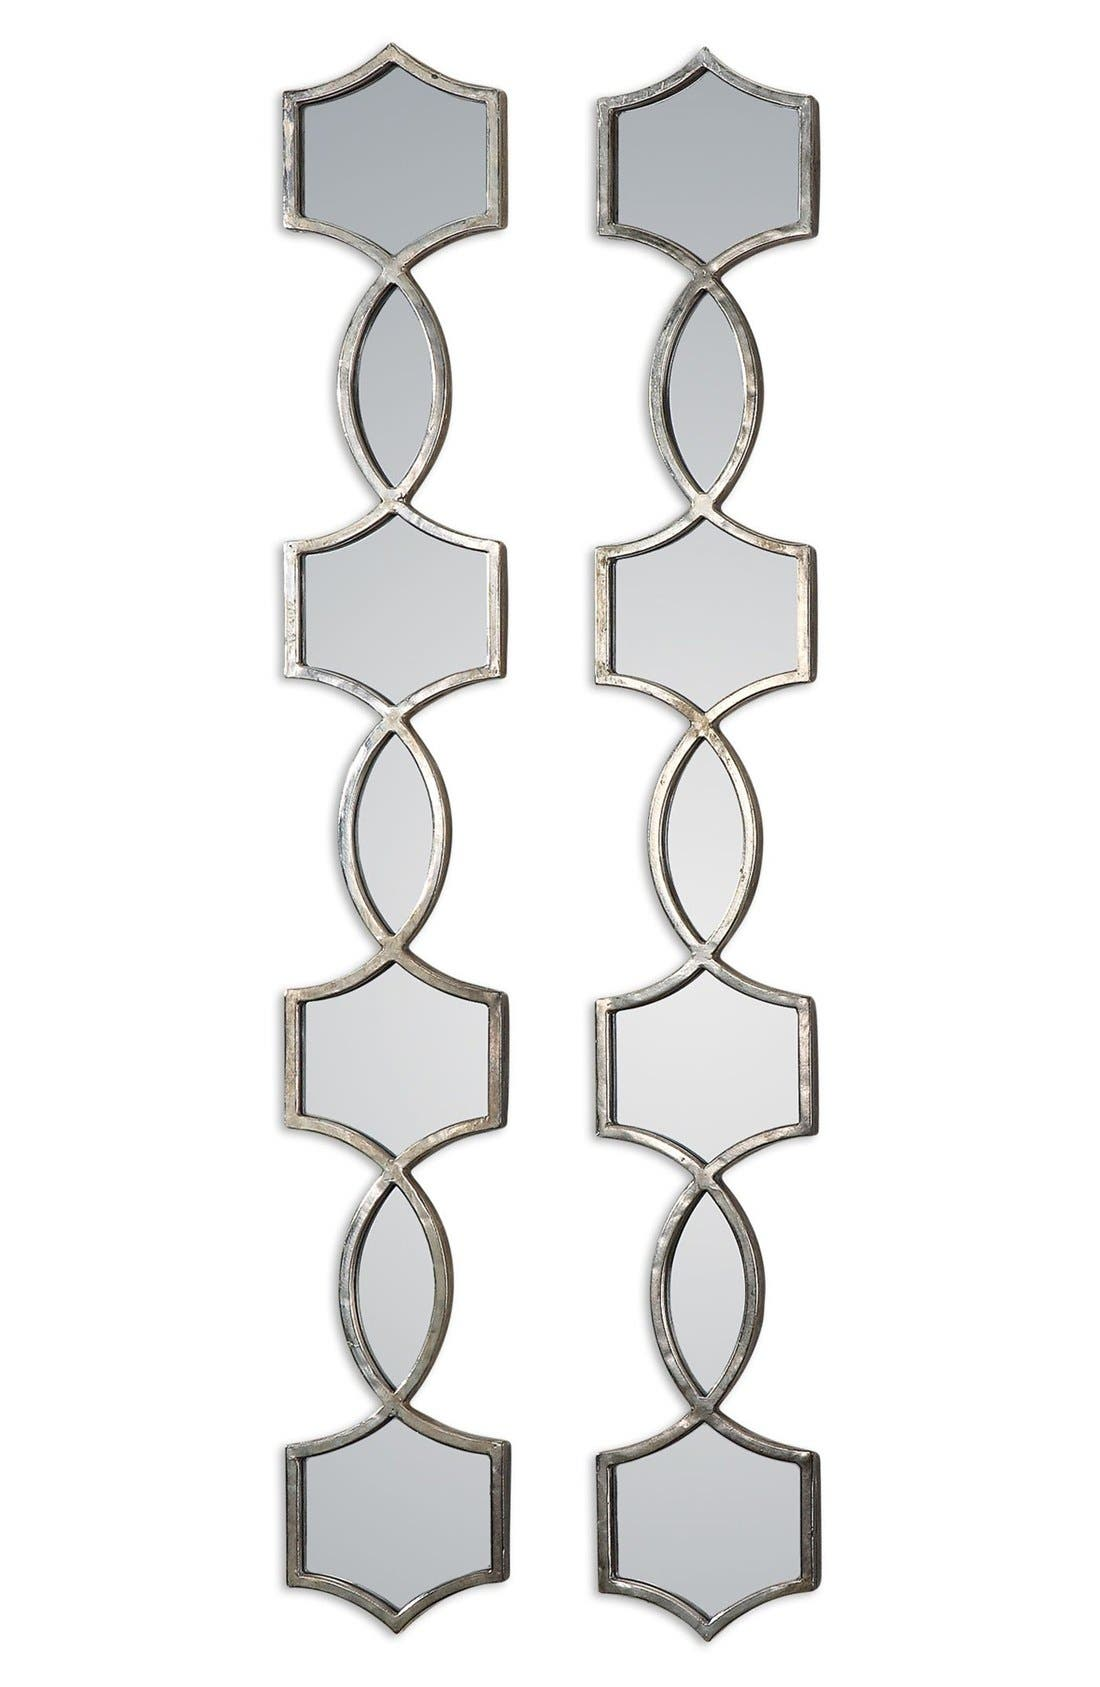 Main Image - Uttermost 'Vizela' Metal Wall Mirrors (Set of 2)